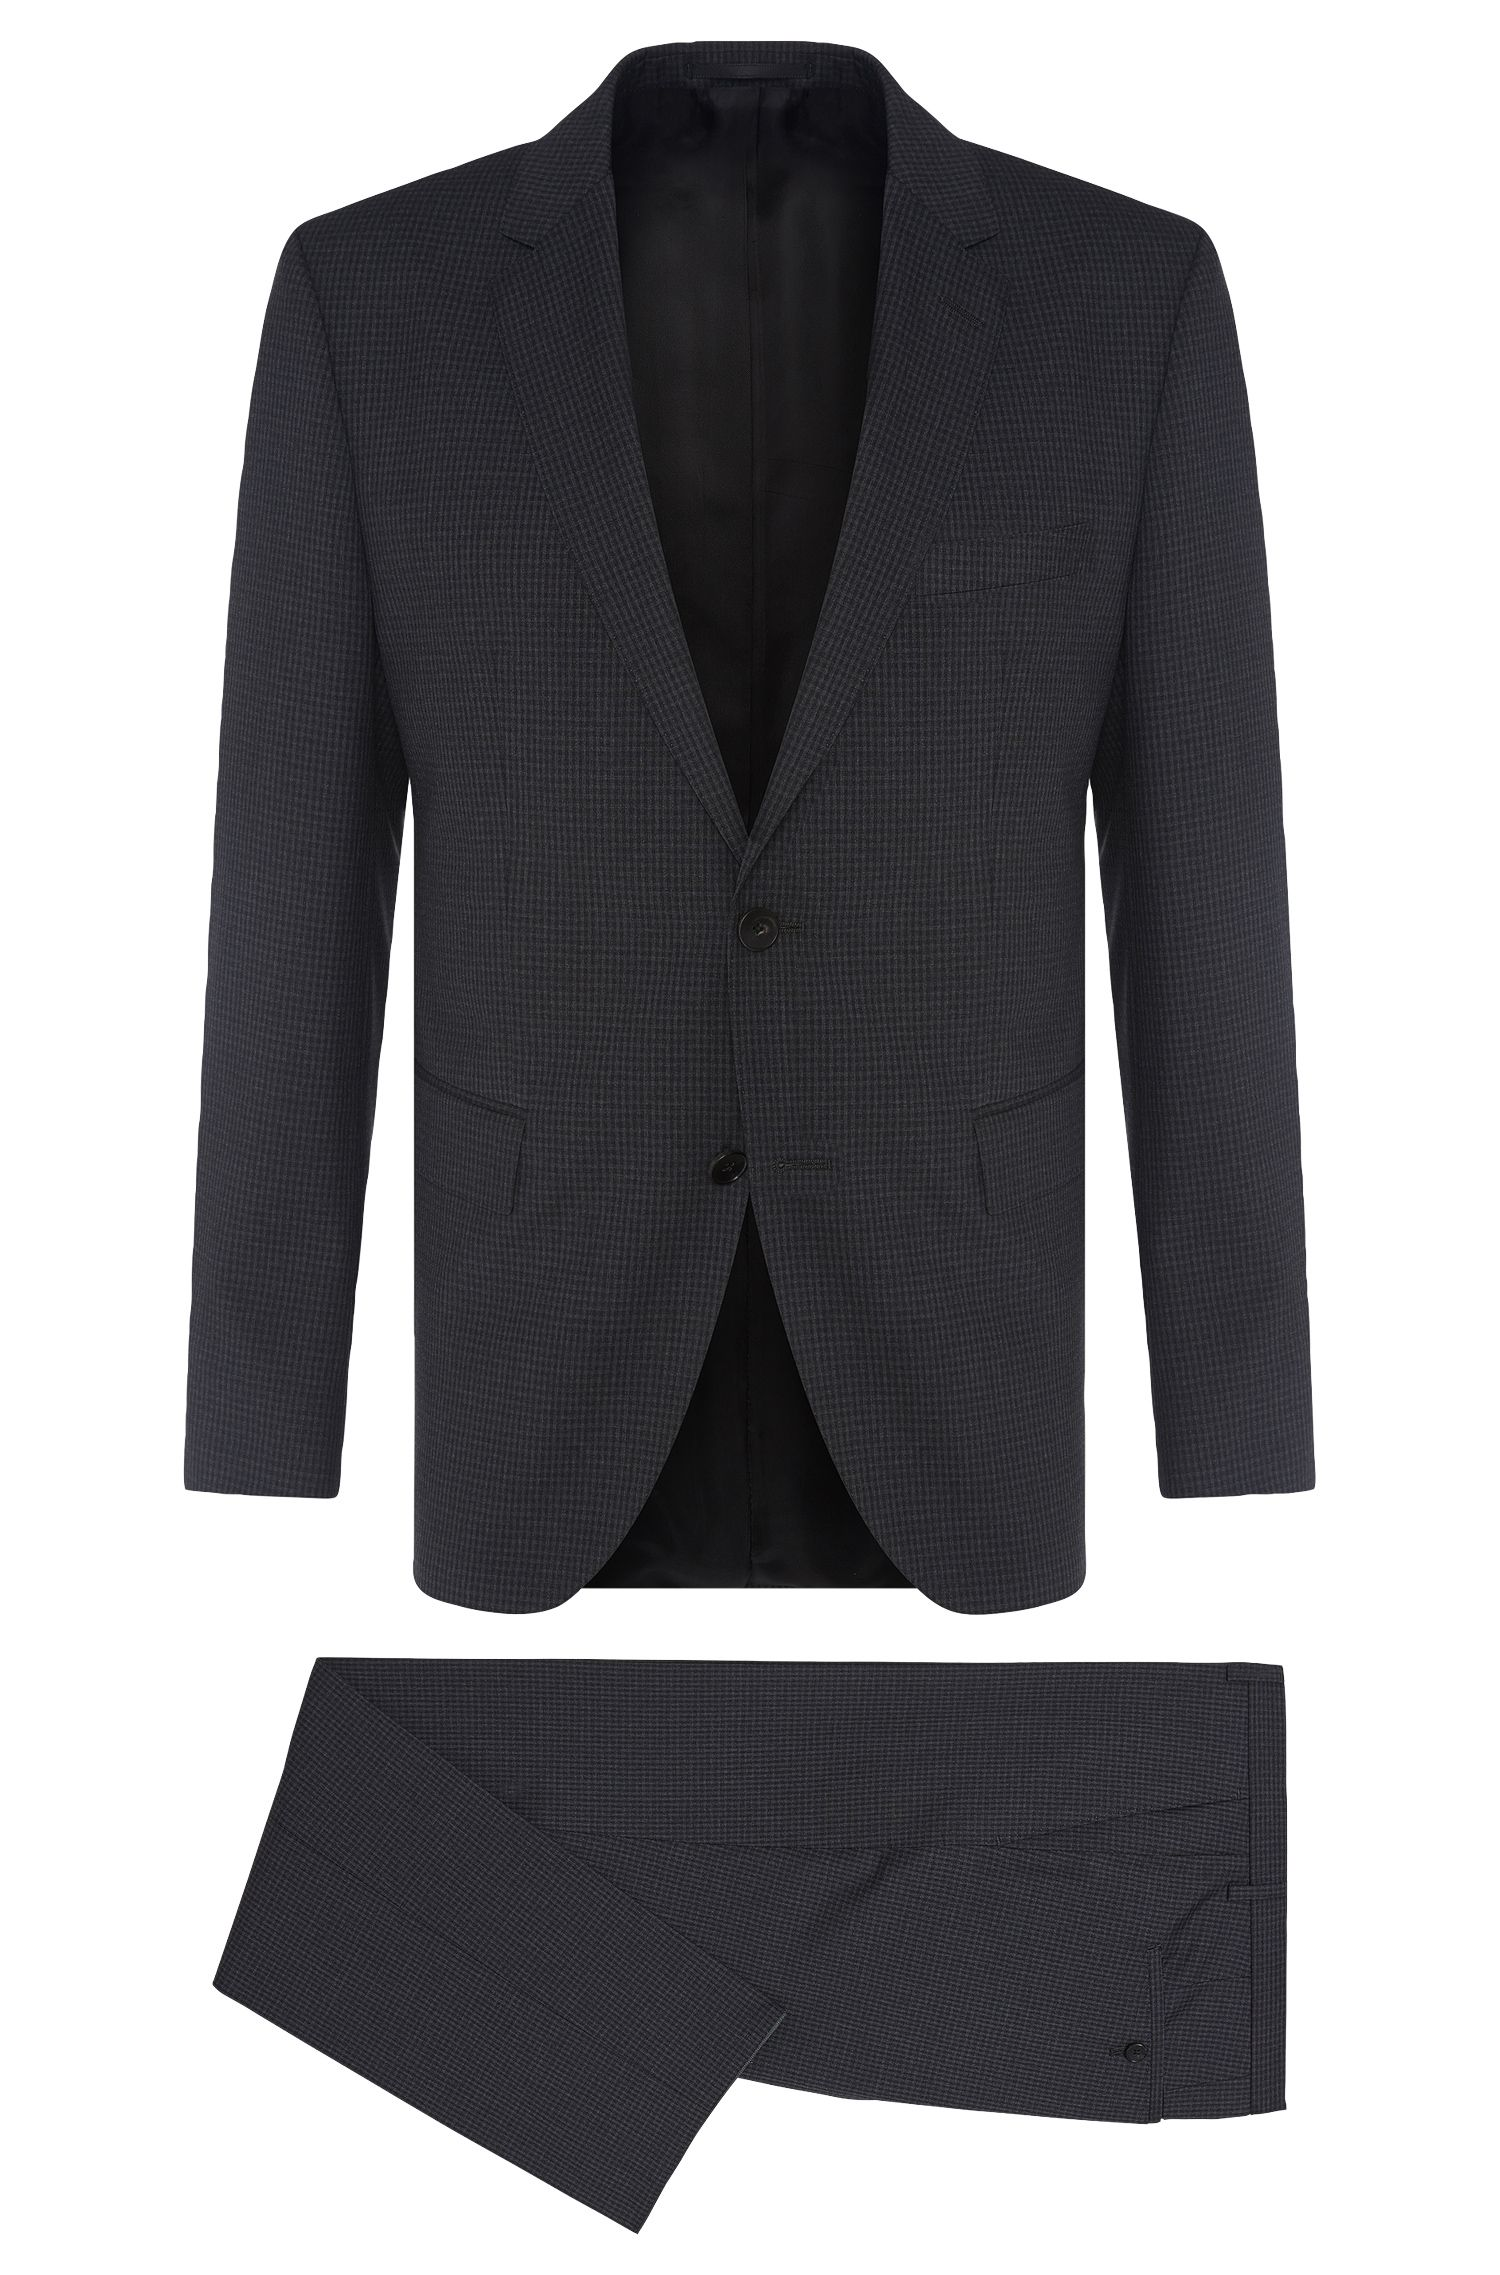 Super 110 Italian Virgin Wool Suit, Regular Fit | Johnstons/Lenon